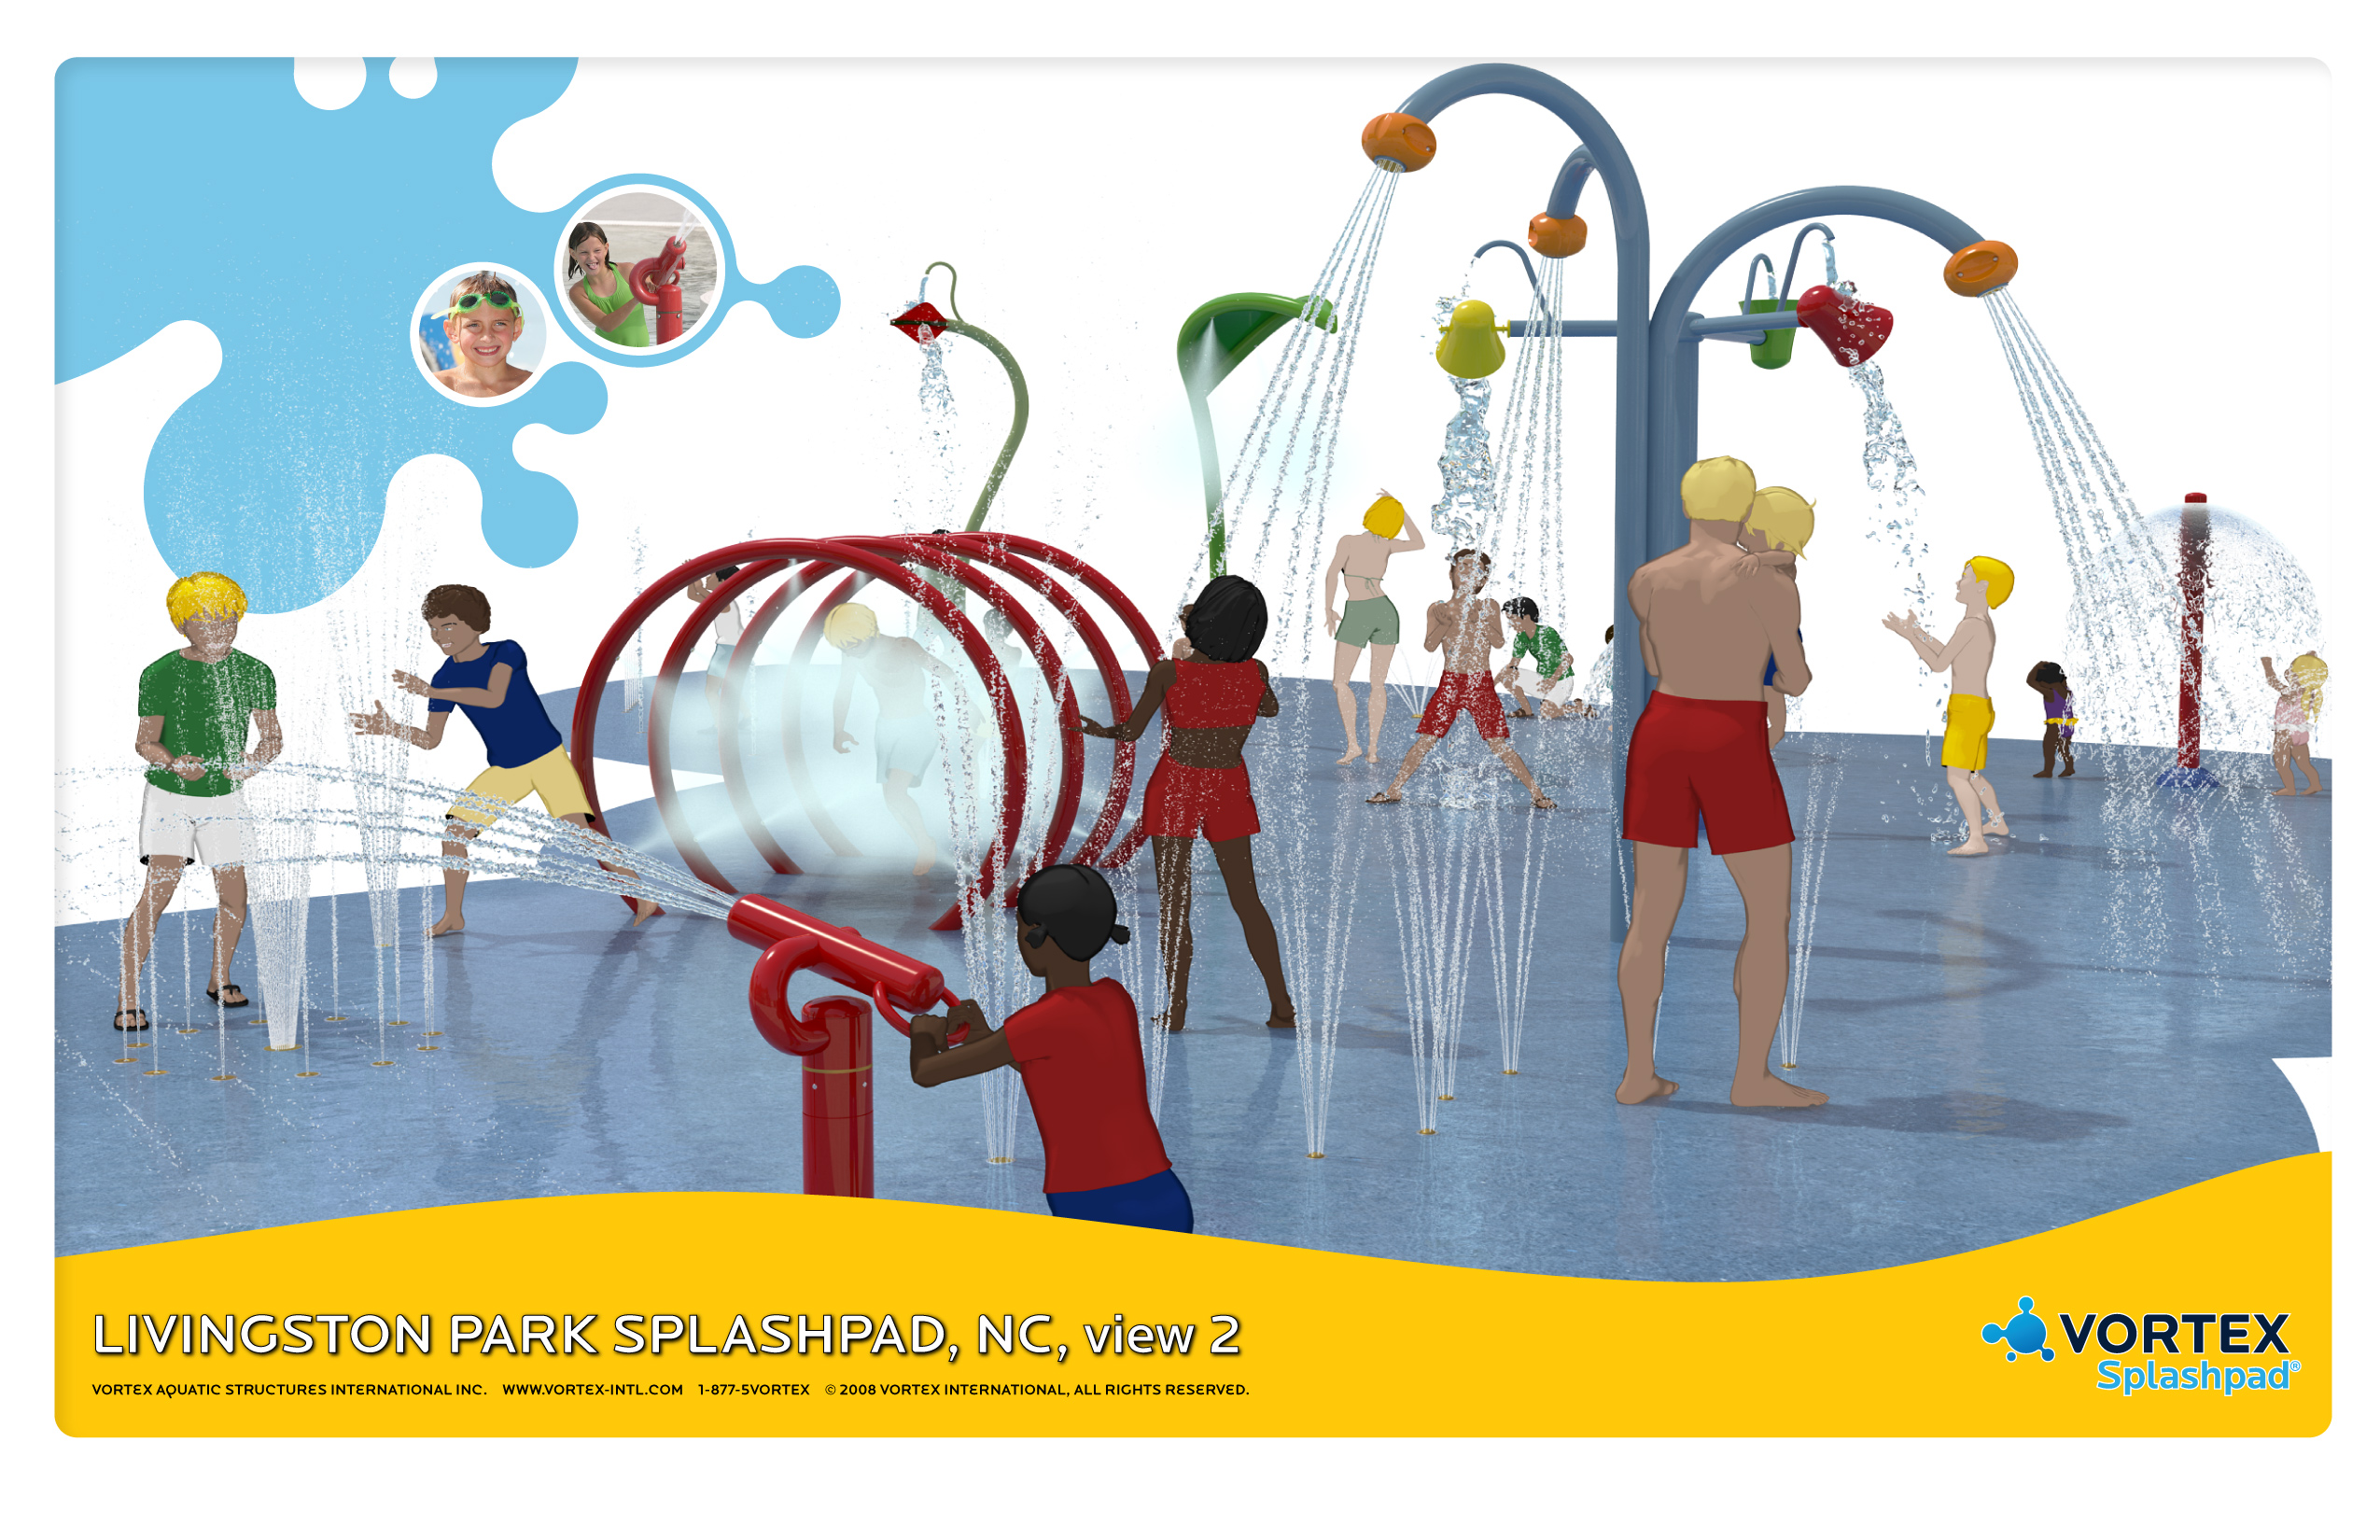 Splash Pad Images